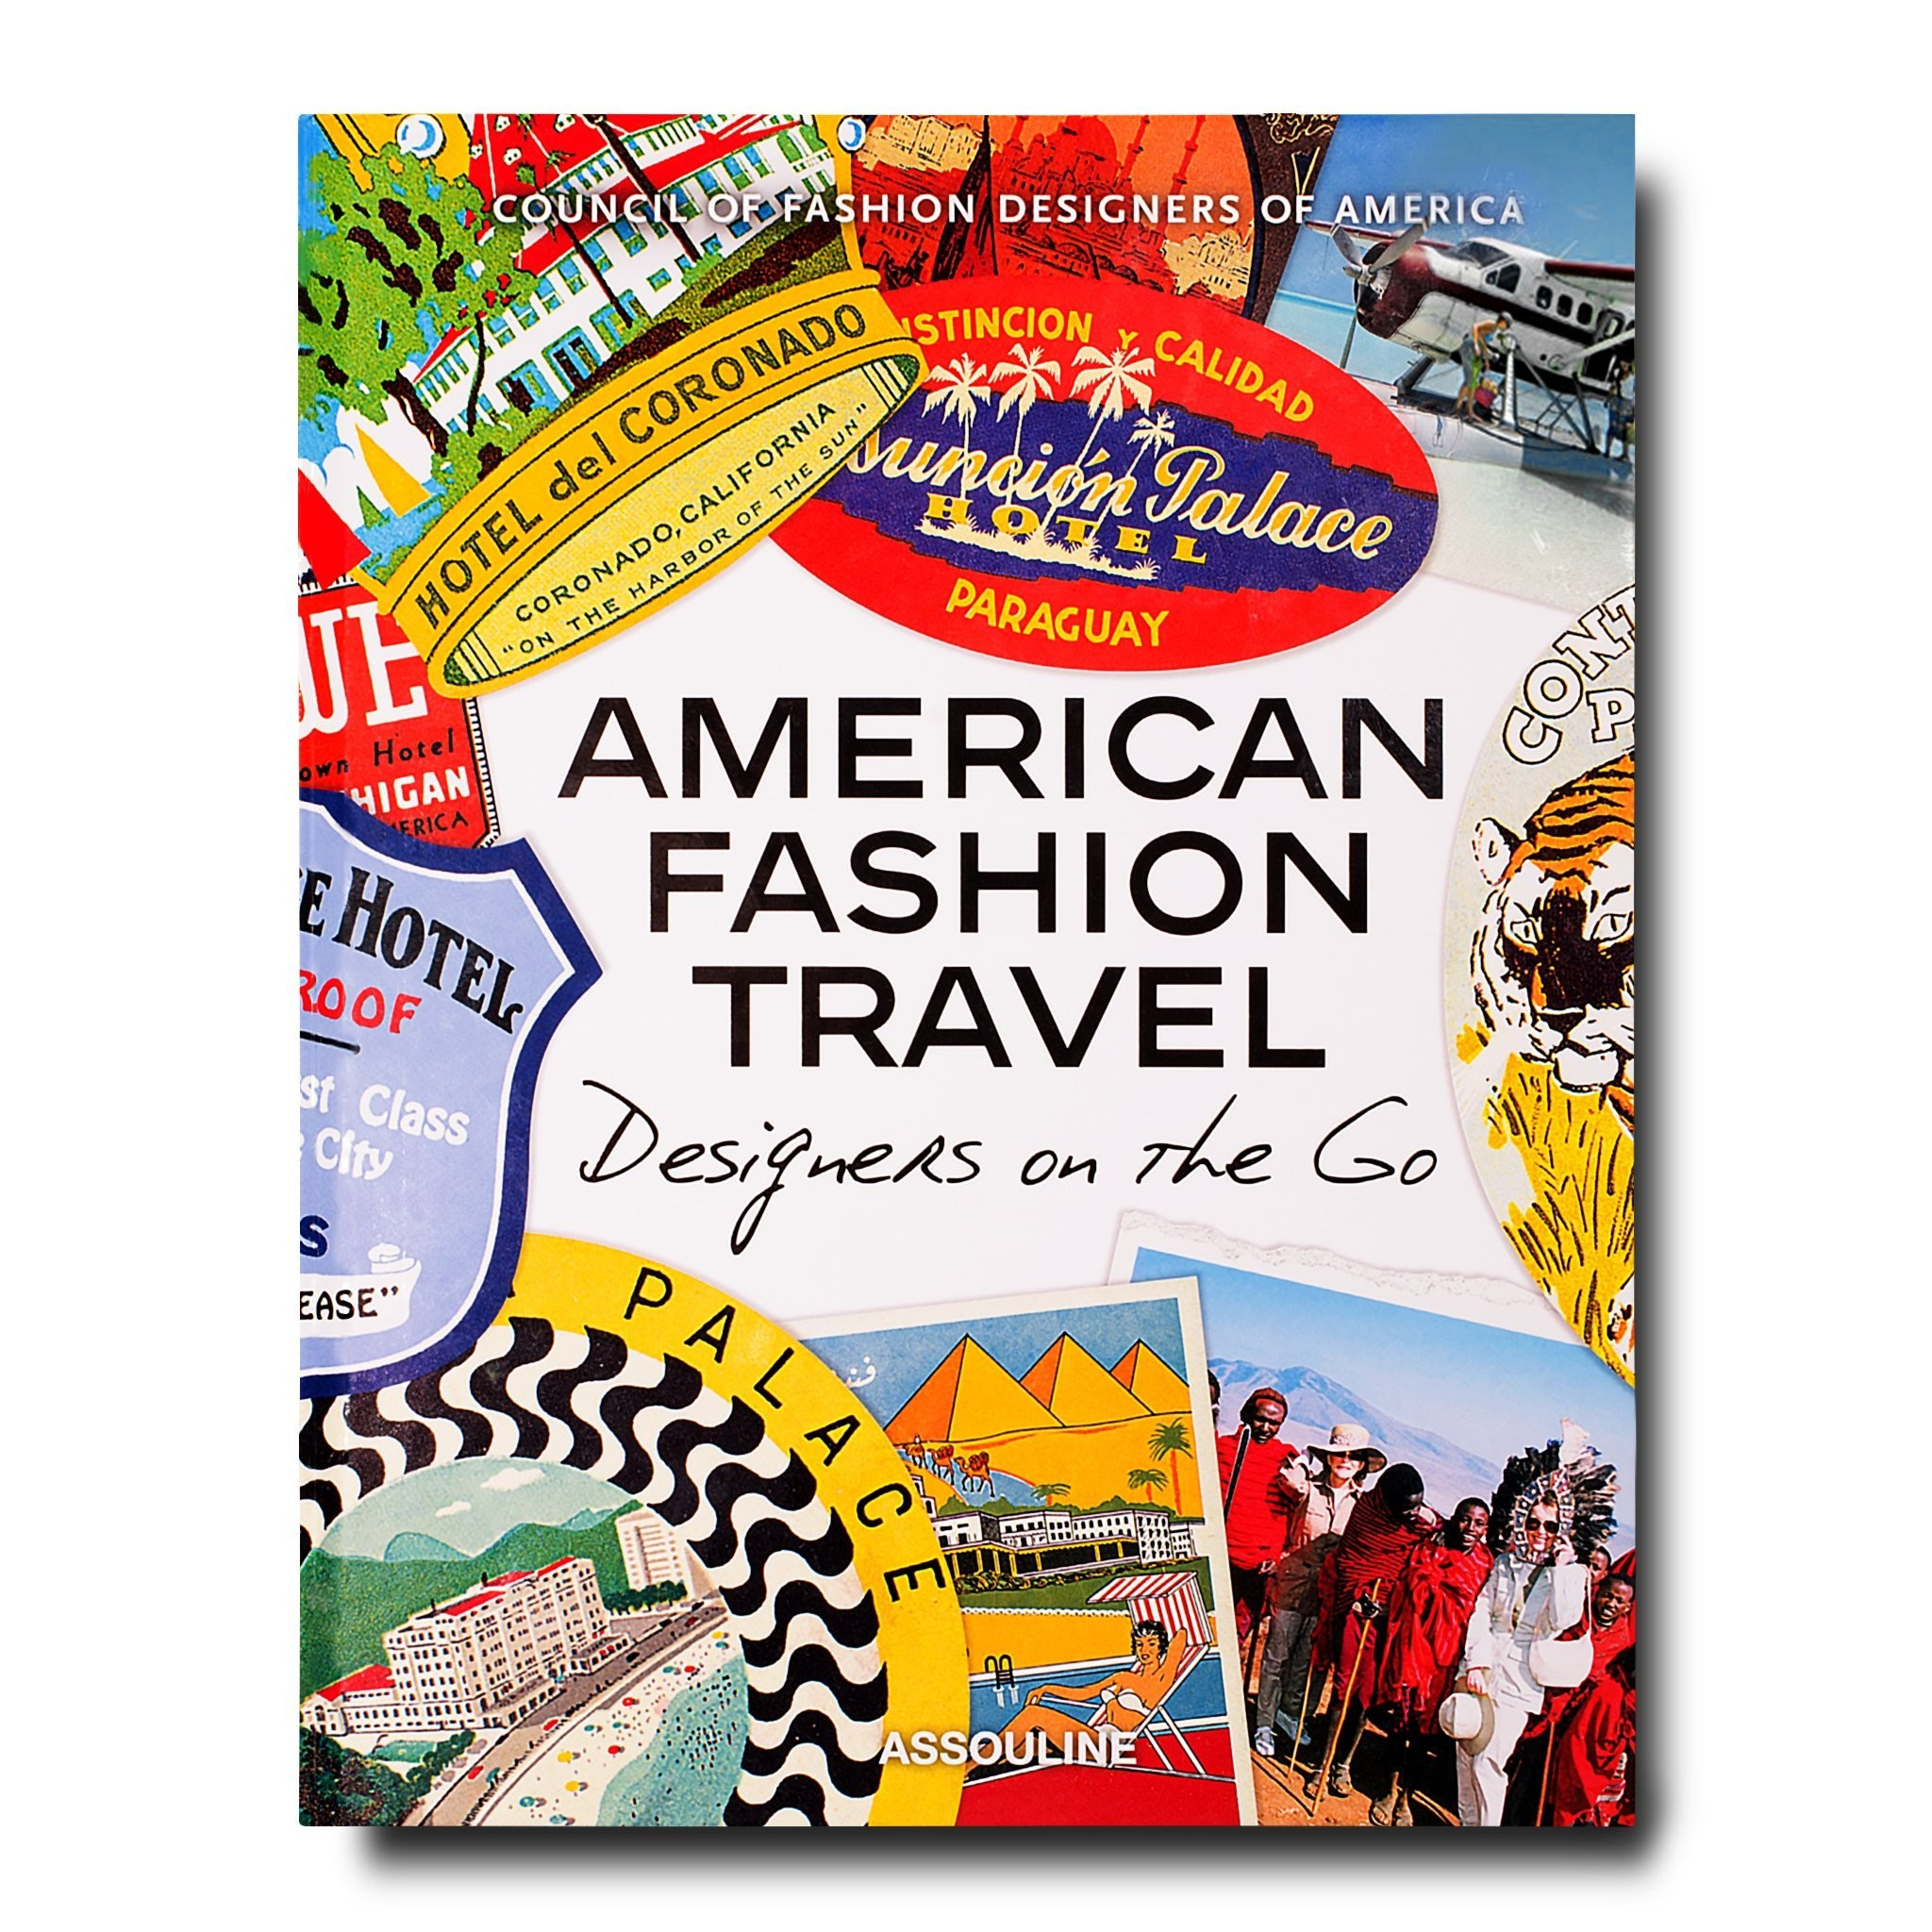 Buy The CD - m Council of fashion designers of america wiki